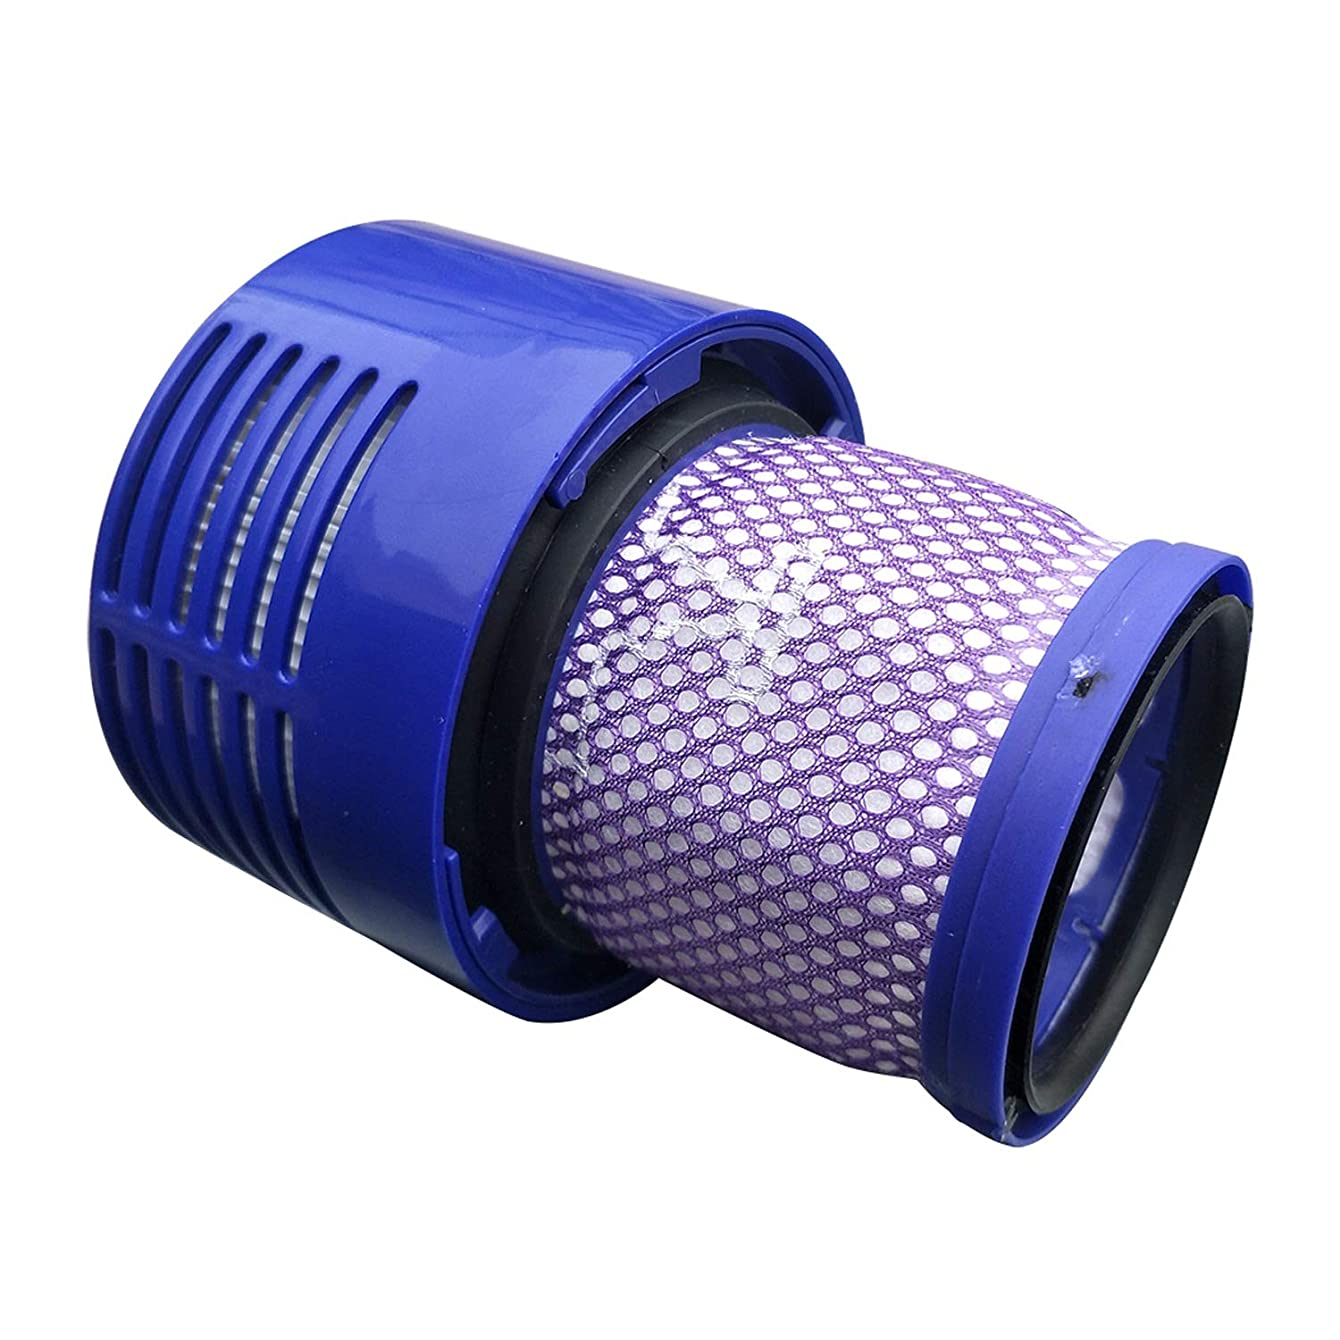 Washable Filter for Dyson Cyclone V10 Animal Absolute Motorhead Cordless Vacuum Cleaner Replacement, Compatible with Part 969082-01